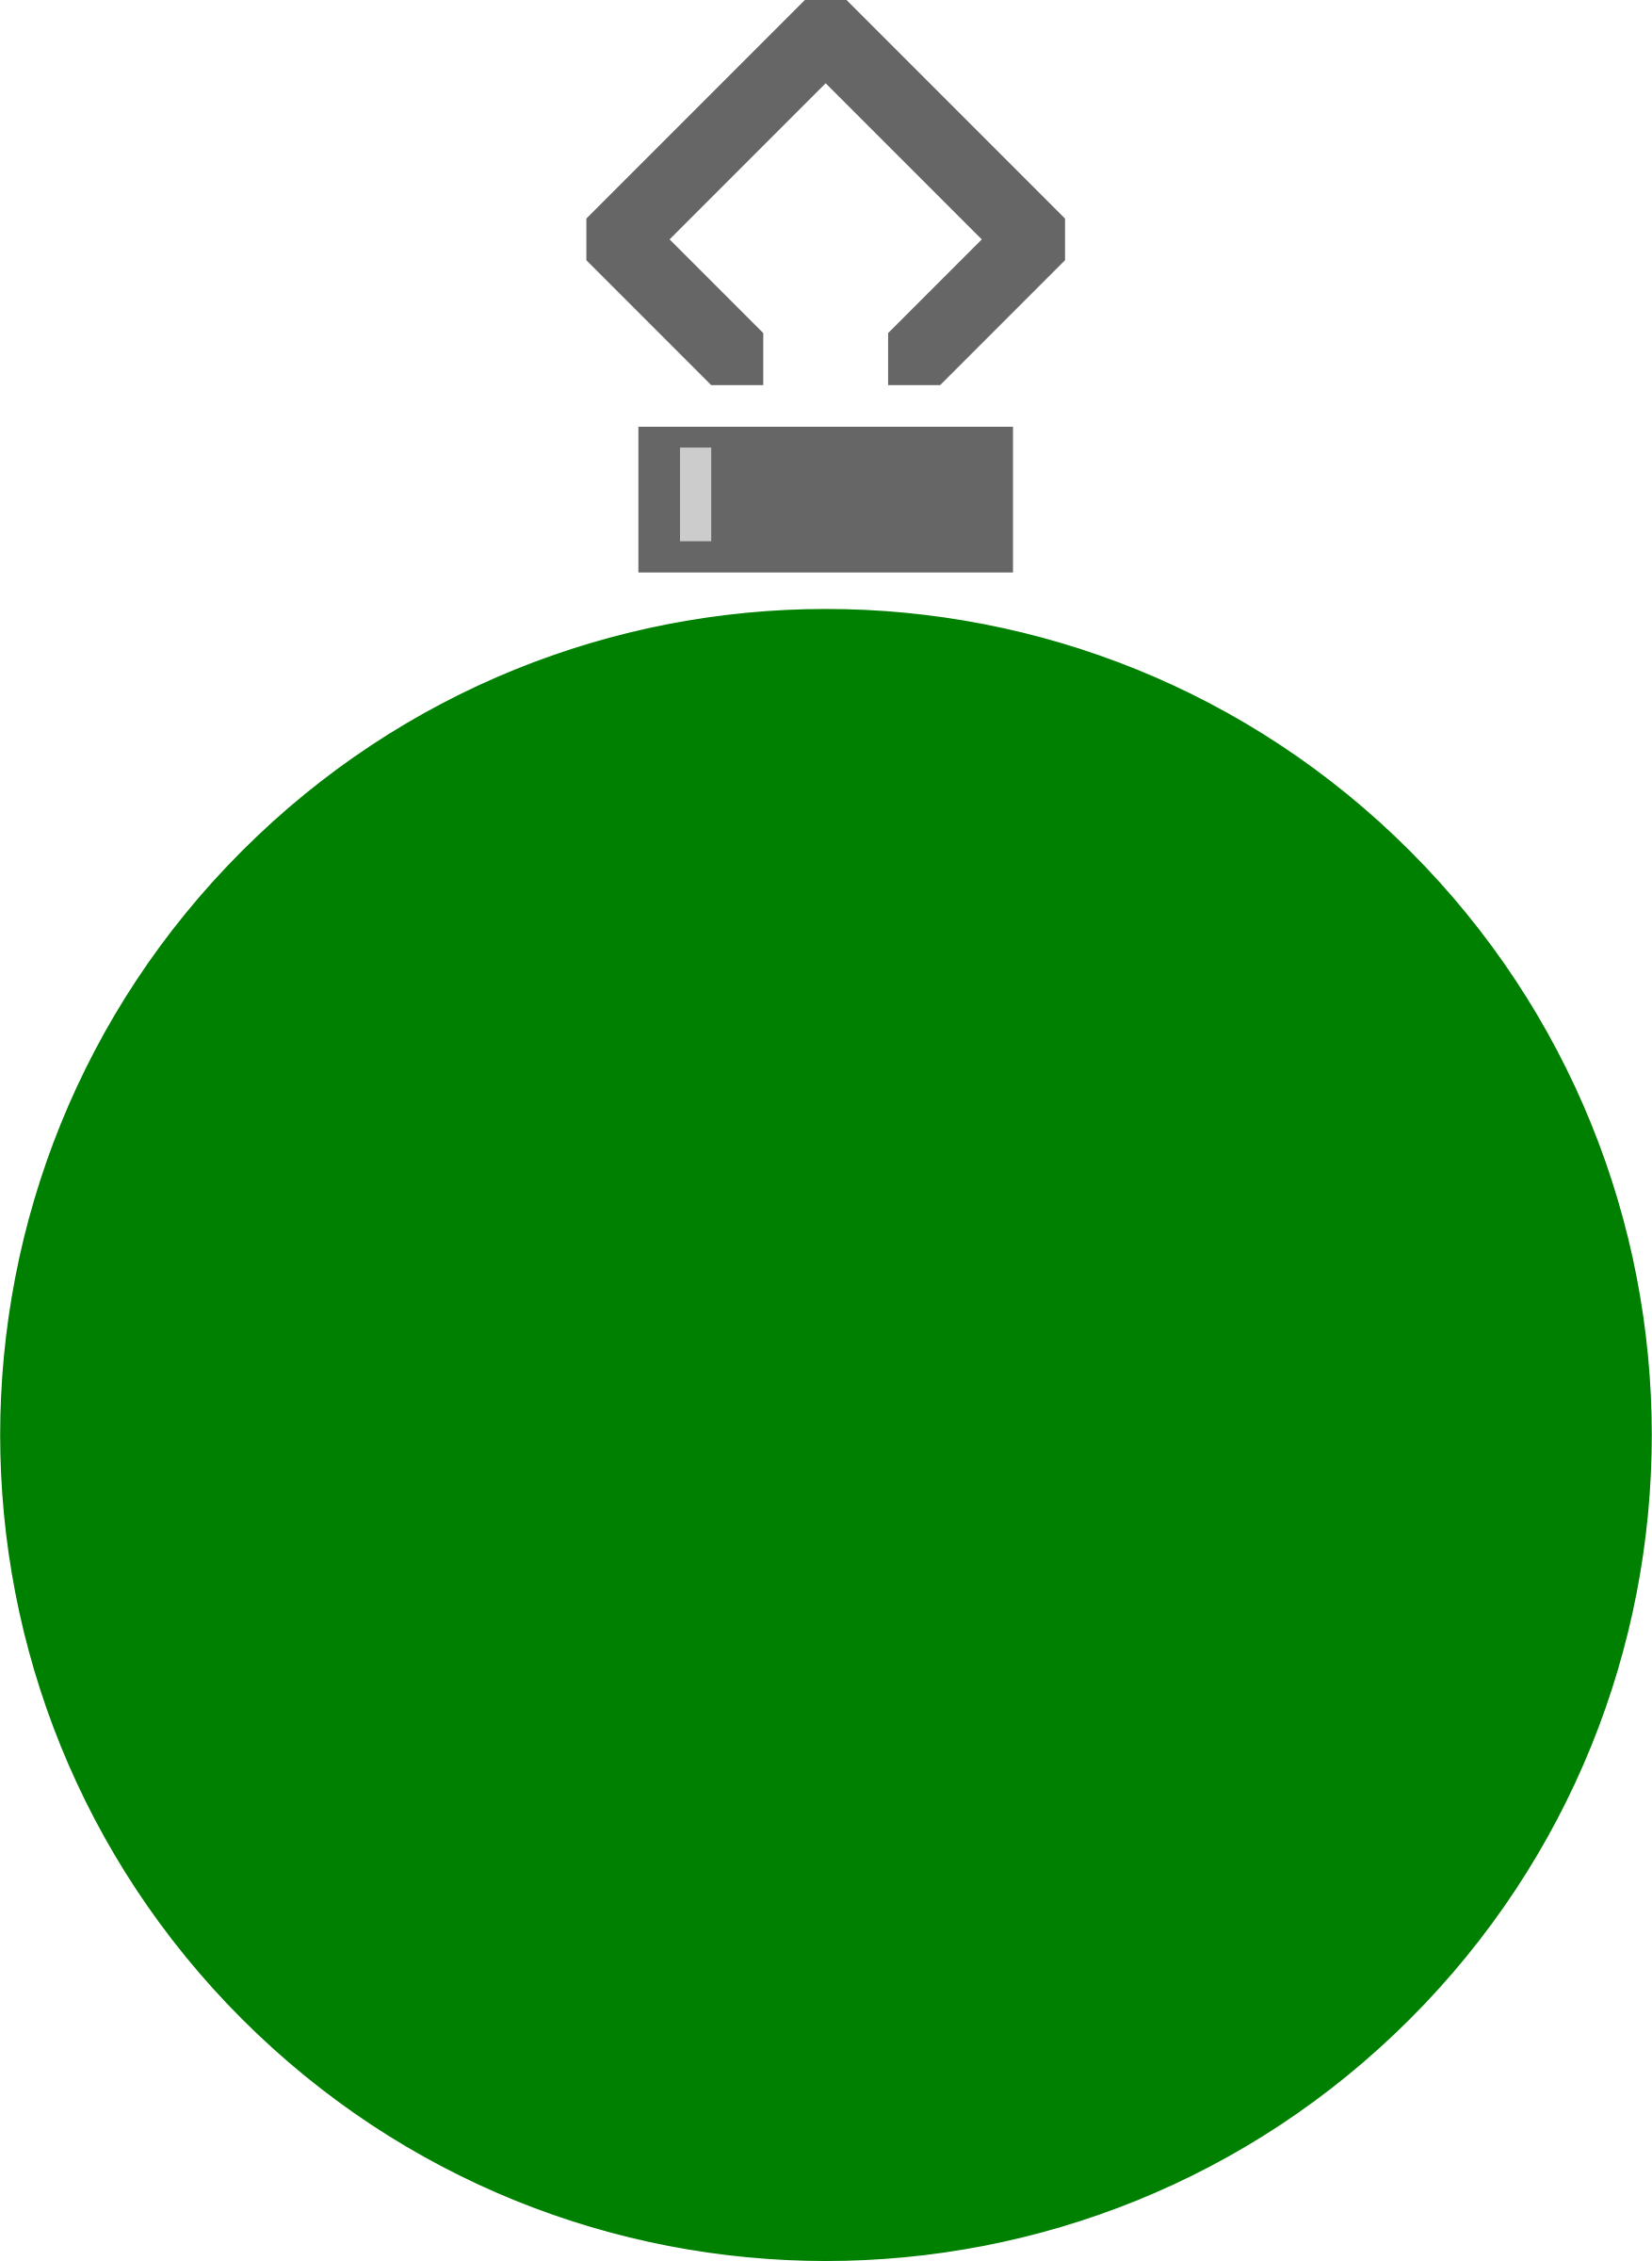 Simple tree bauble 17 (colour) by Firkin